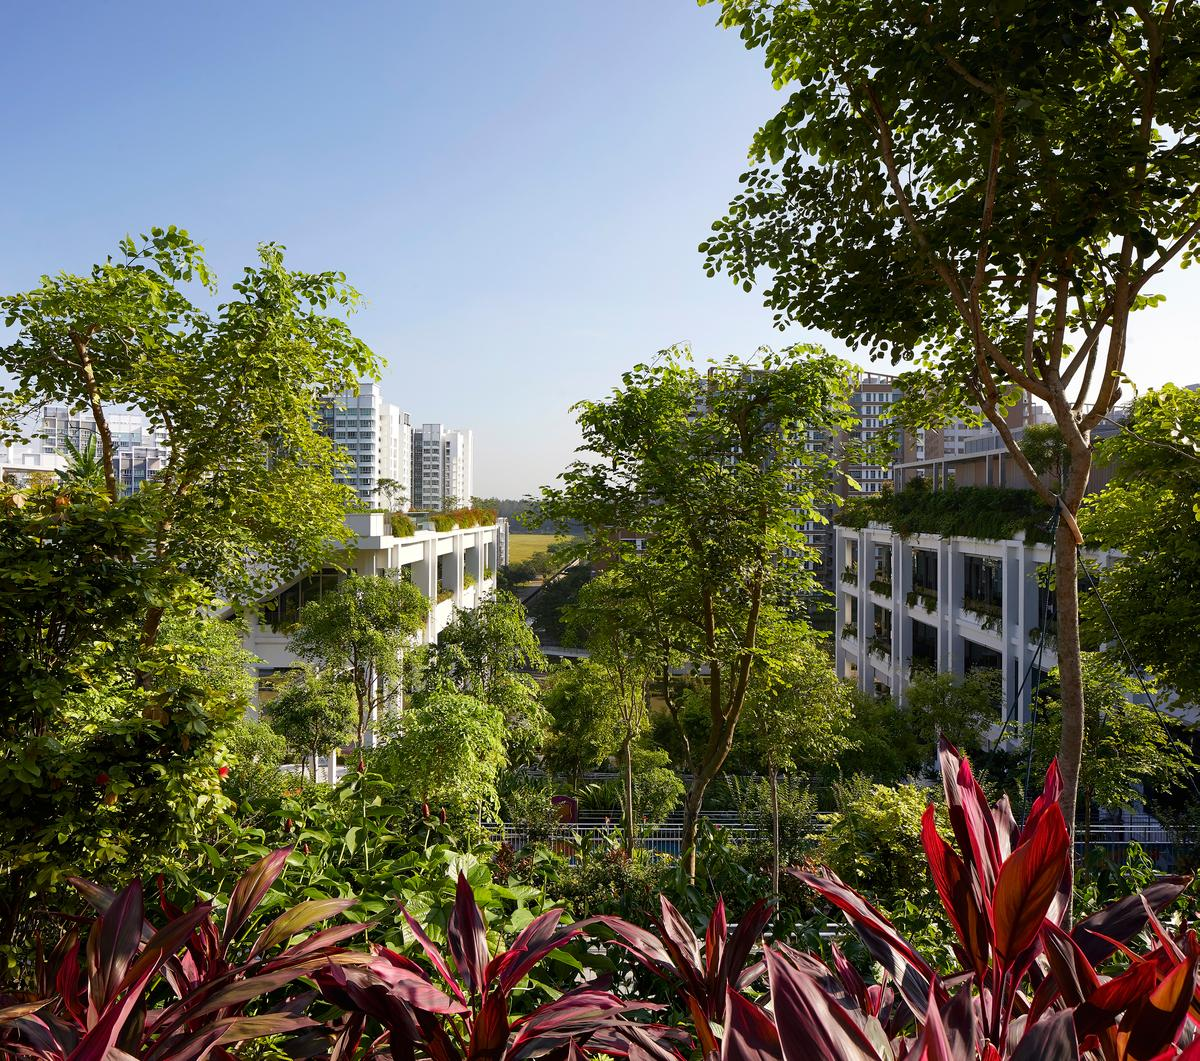 Oasis Terraces is defined by its lush greenery